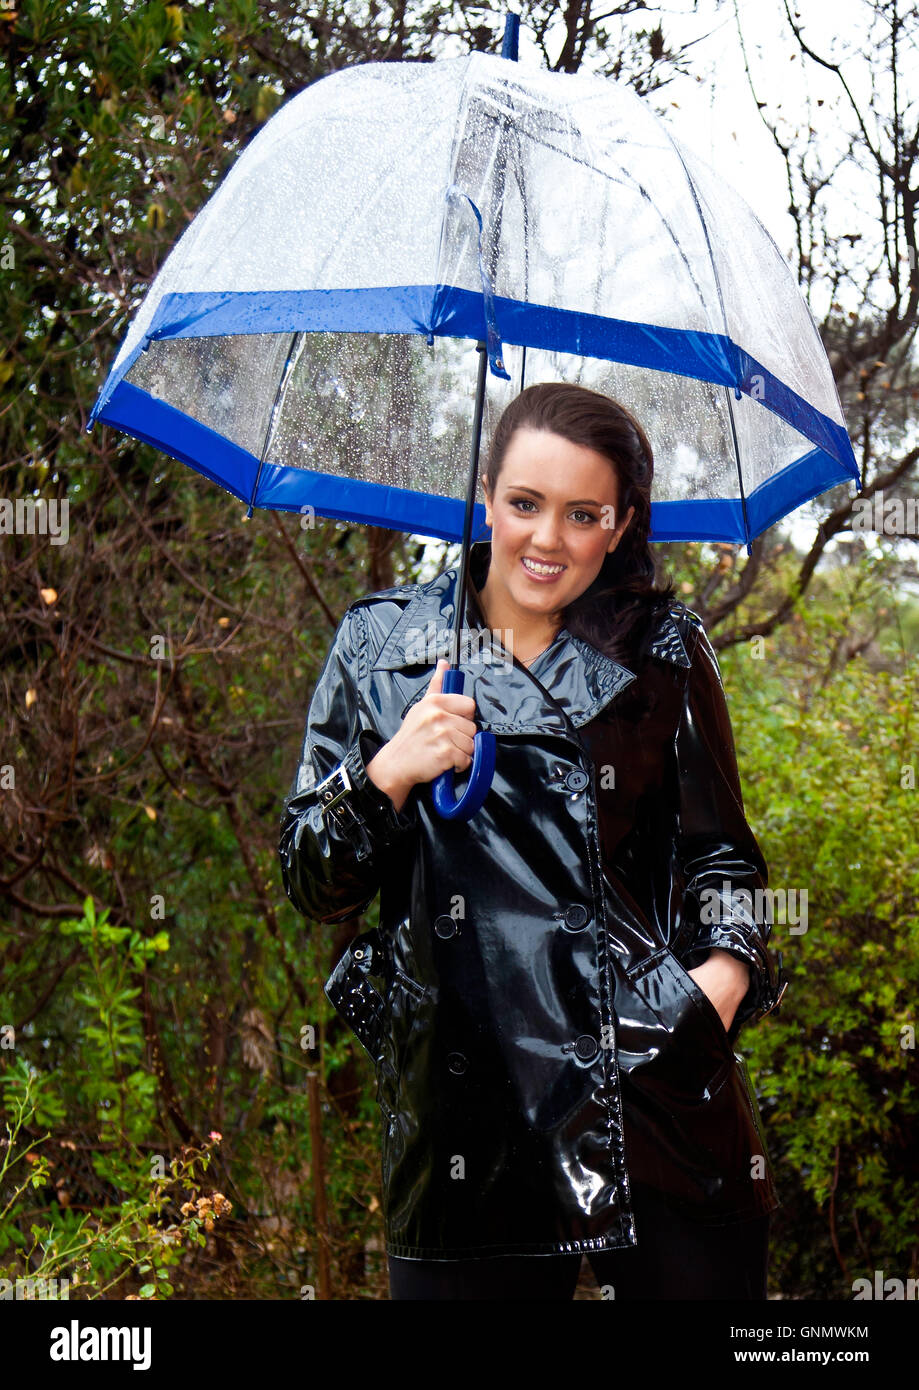 Attractive Young Woman Dressed For Wet Weather In Shiny